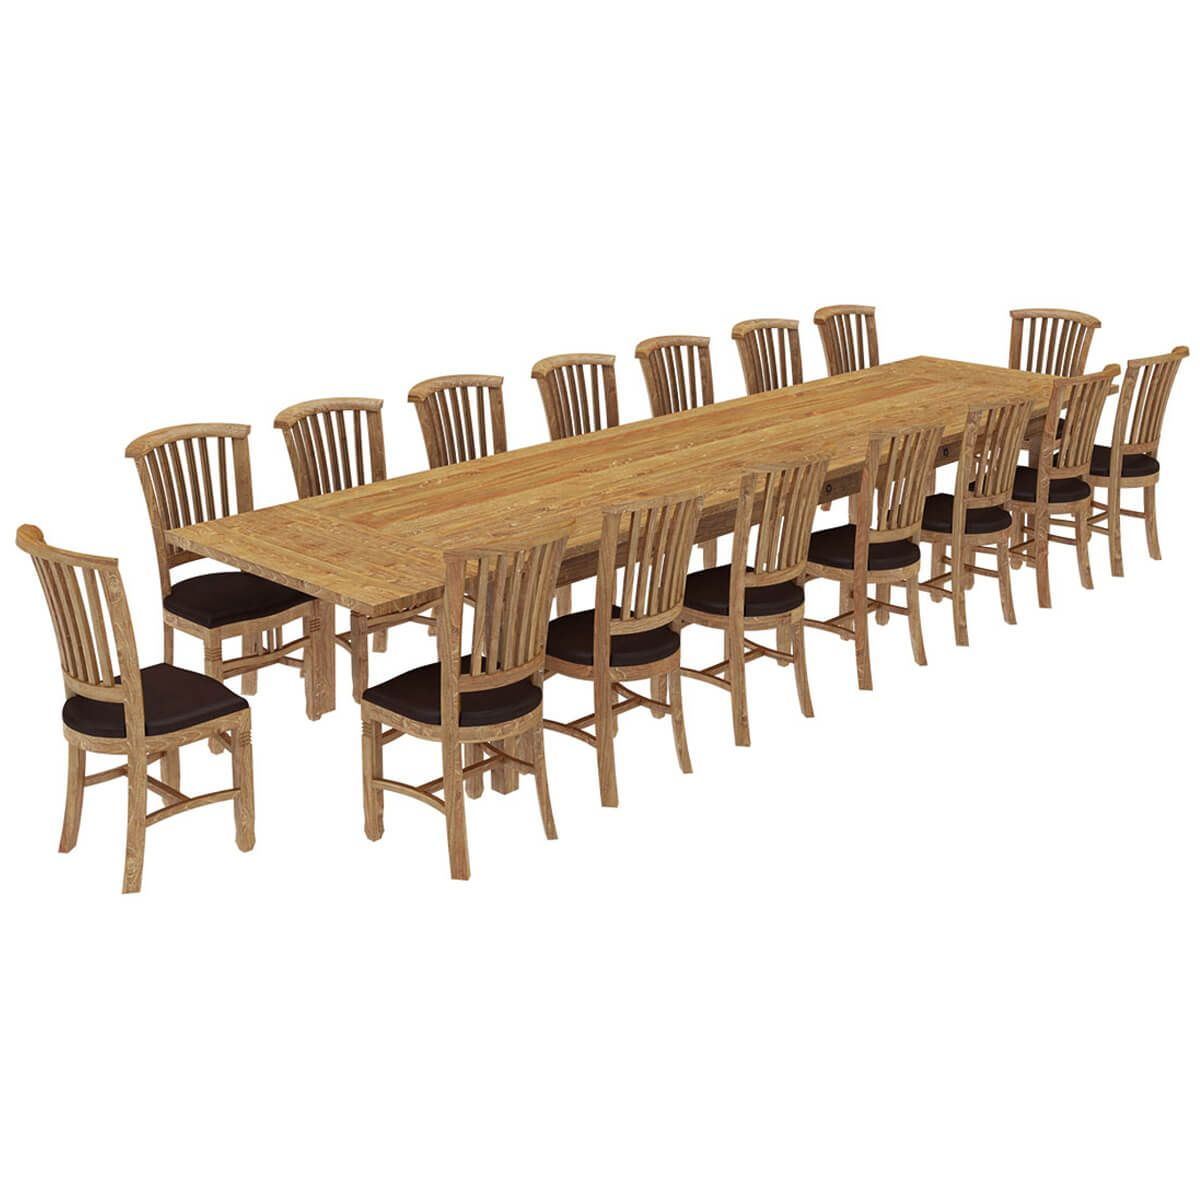 Astounding Brussels Reclaimed Wood 17 Piece Large Extendable Dining Inzonedesignstudio Interior Chair Design Inzonedesignstudiocom